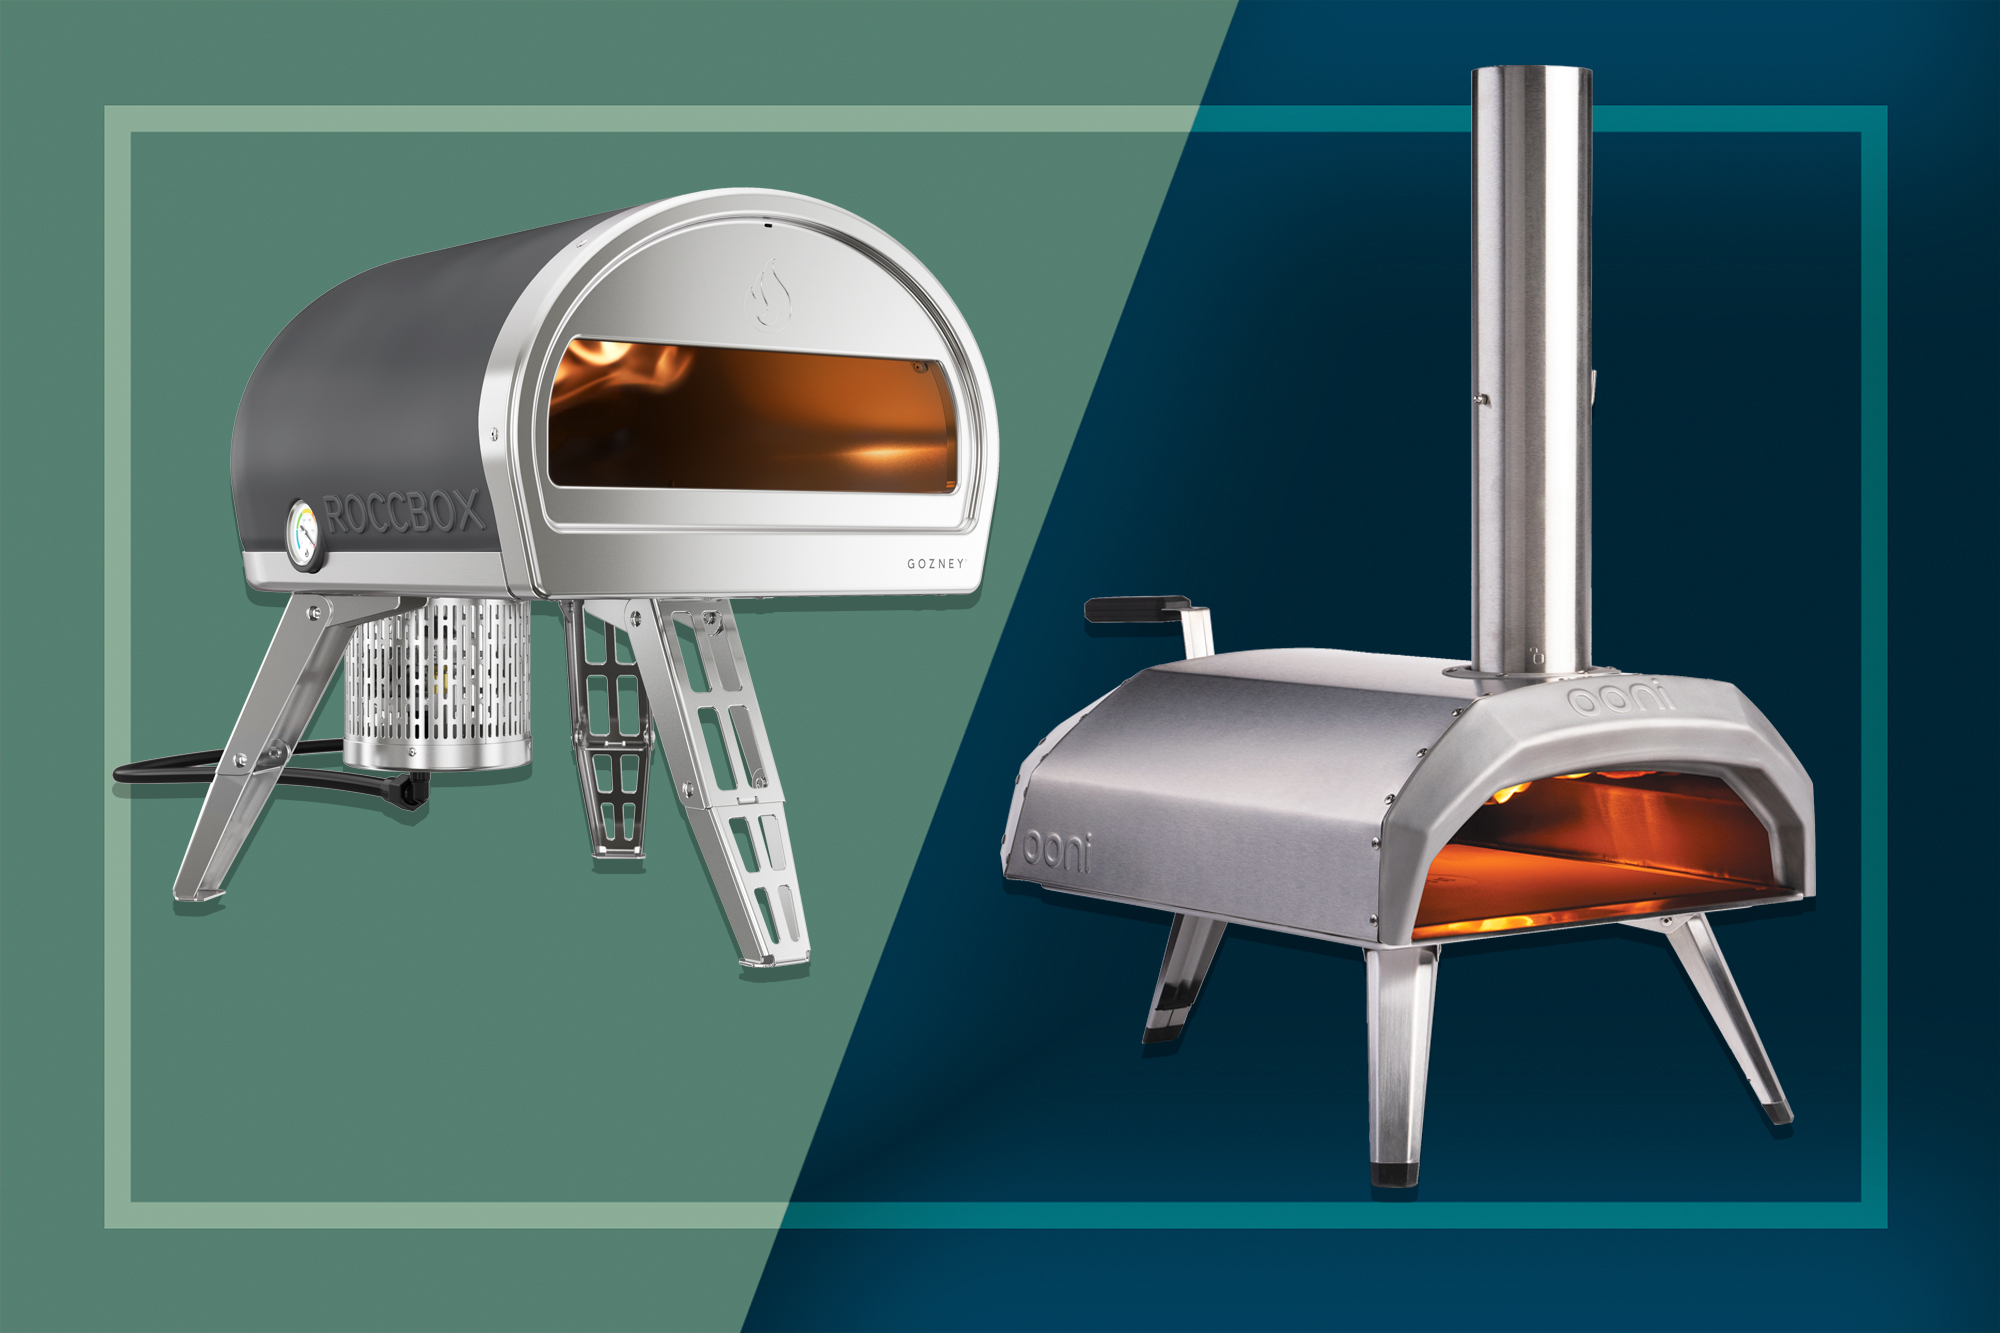 The Best Outdoor Pizza Ovens to Buy Now